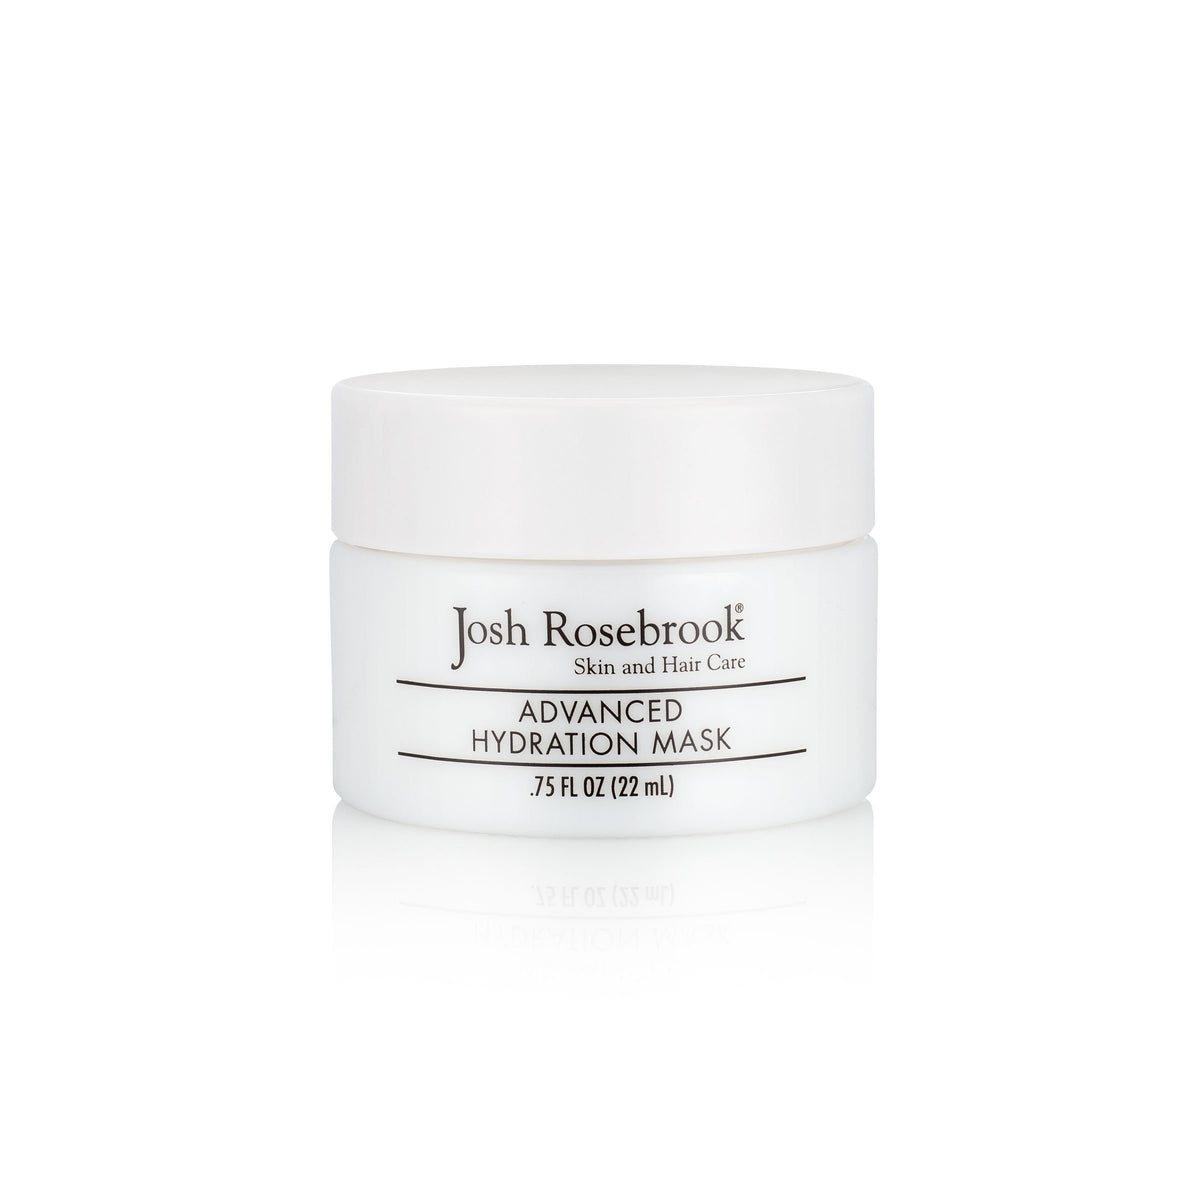 Advanced Hydration Mask Gesichtsmaske Josh Rosebrook 22ml - Genuine Selection